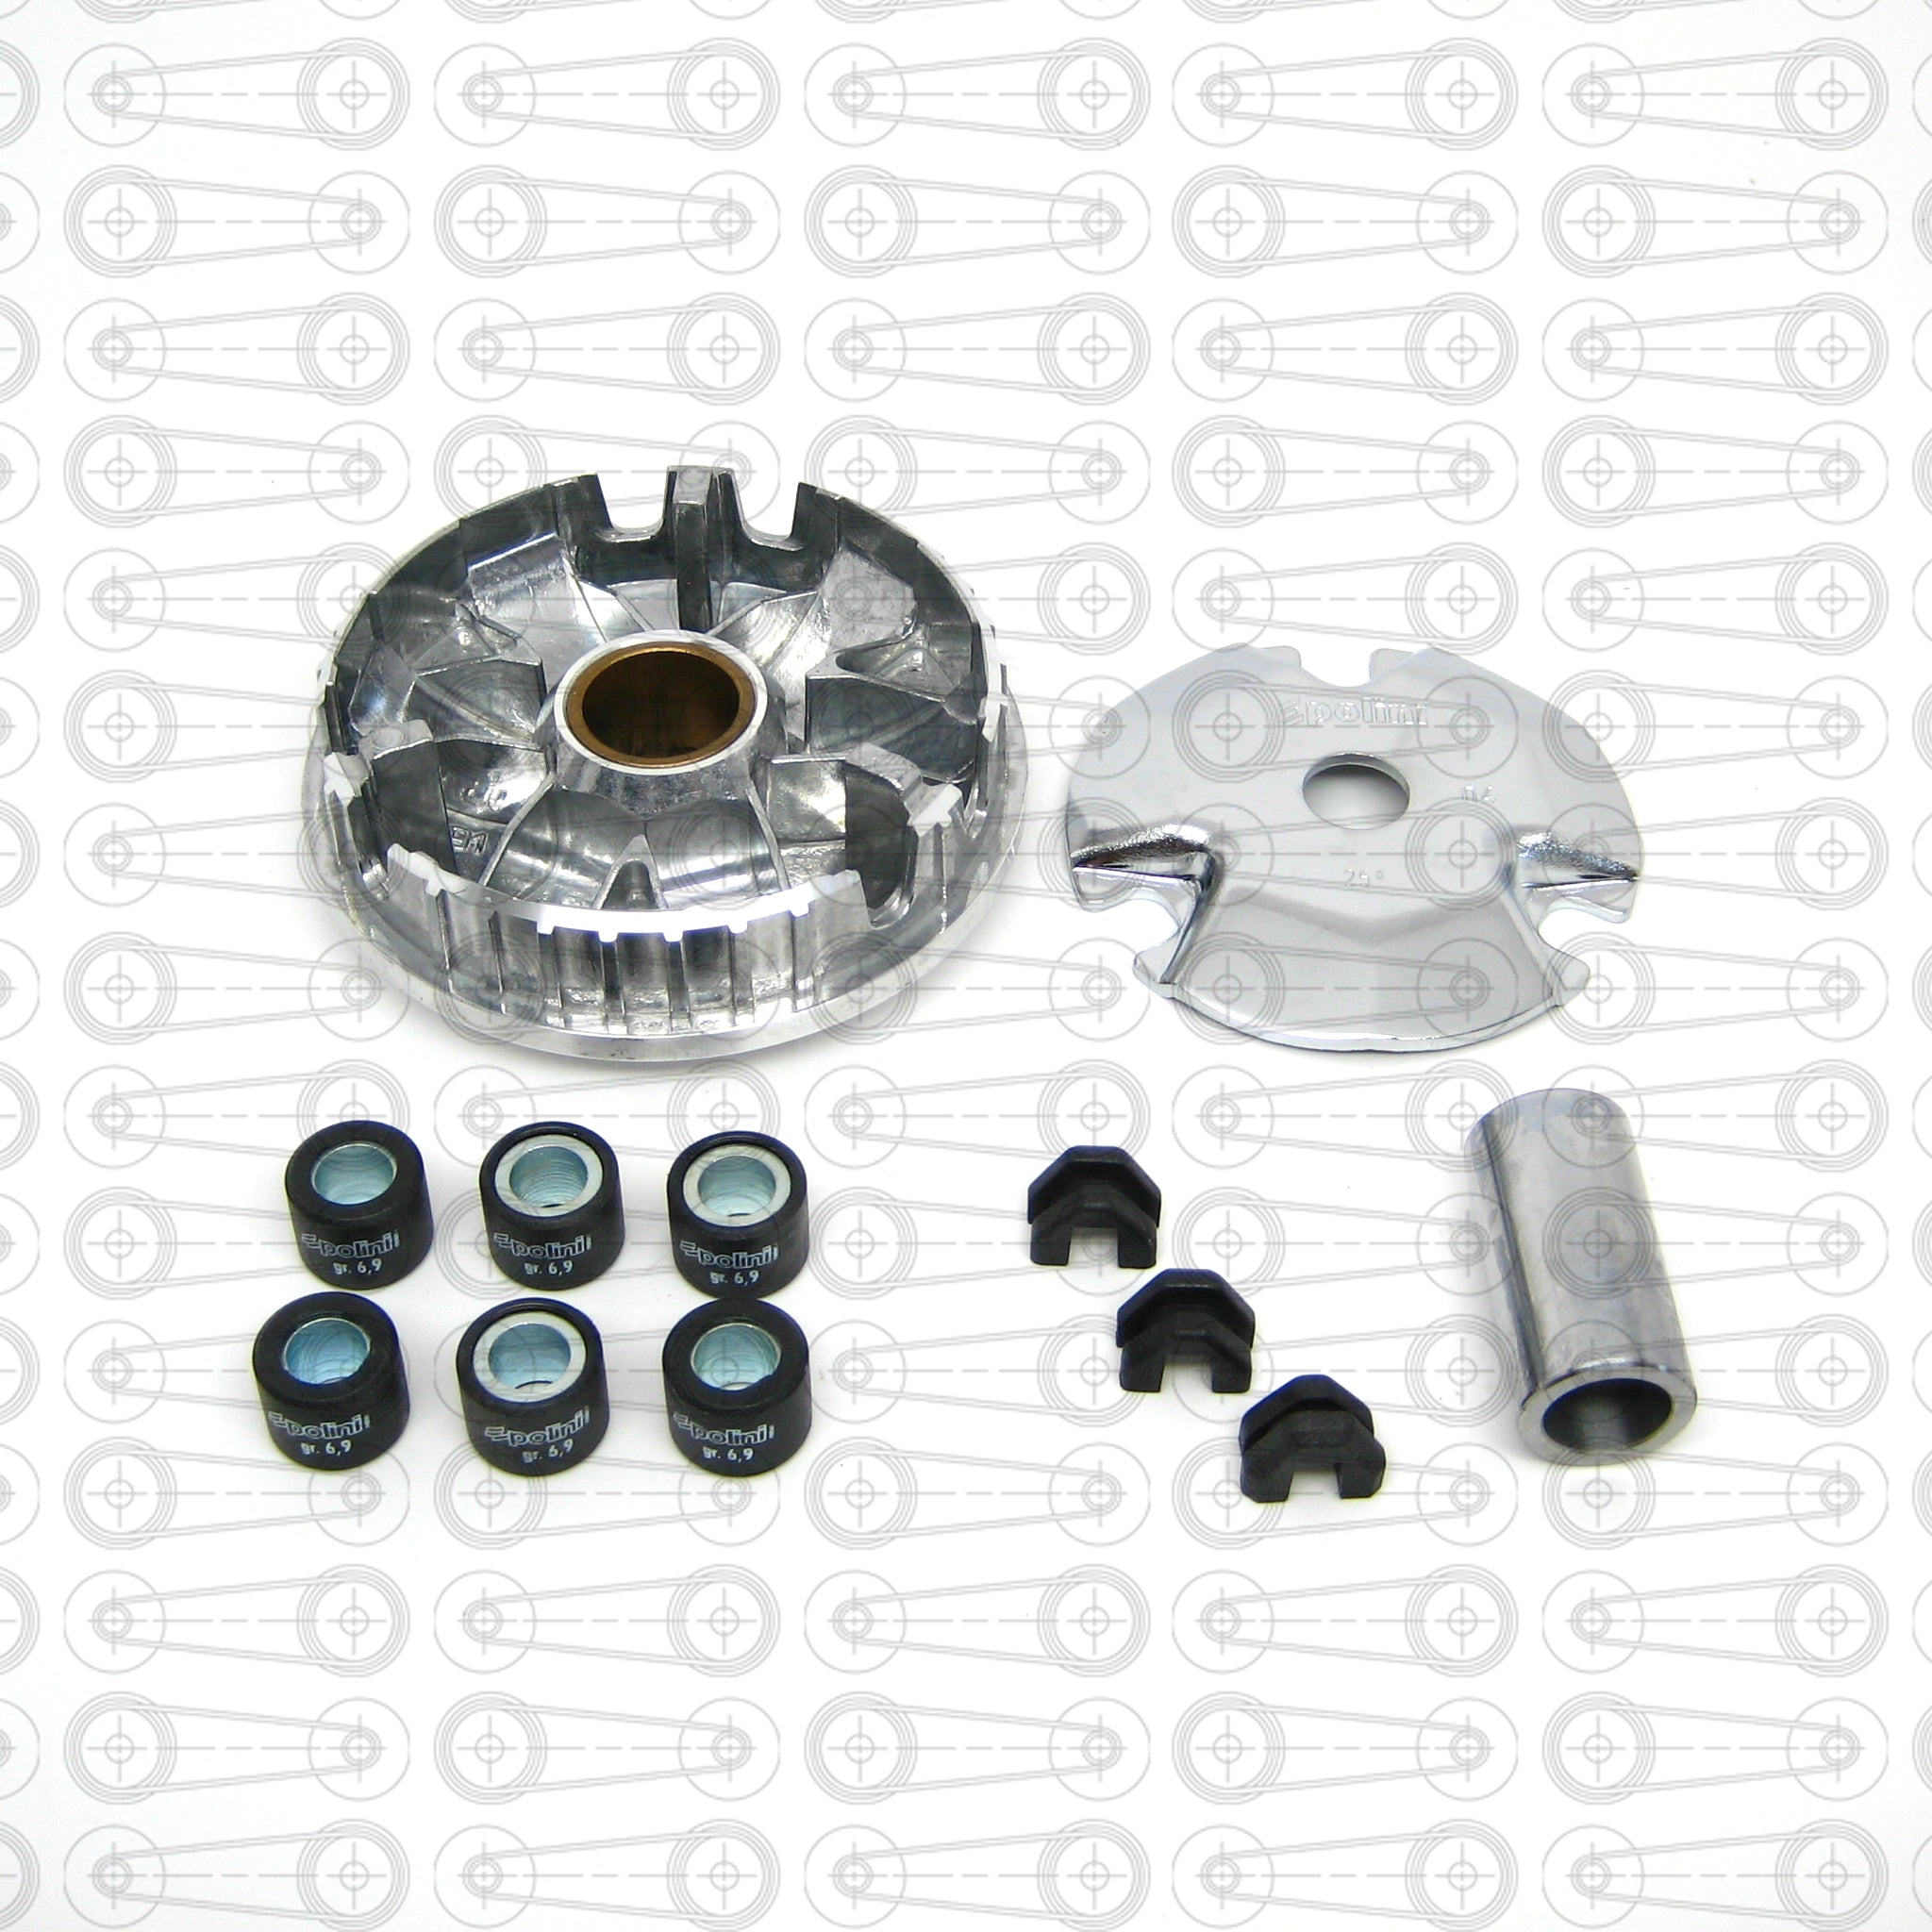 POLINI - HI-SPEED VARIATOR KIT (DIO/QMB)